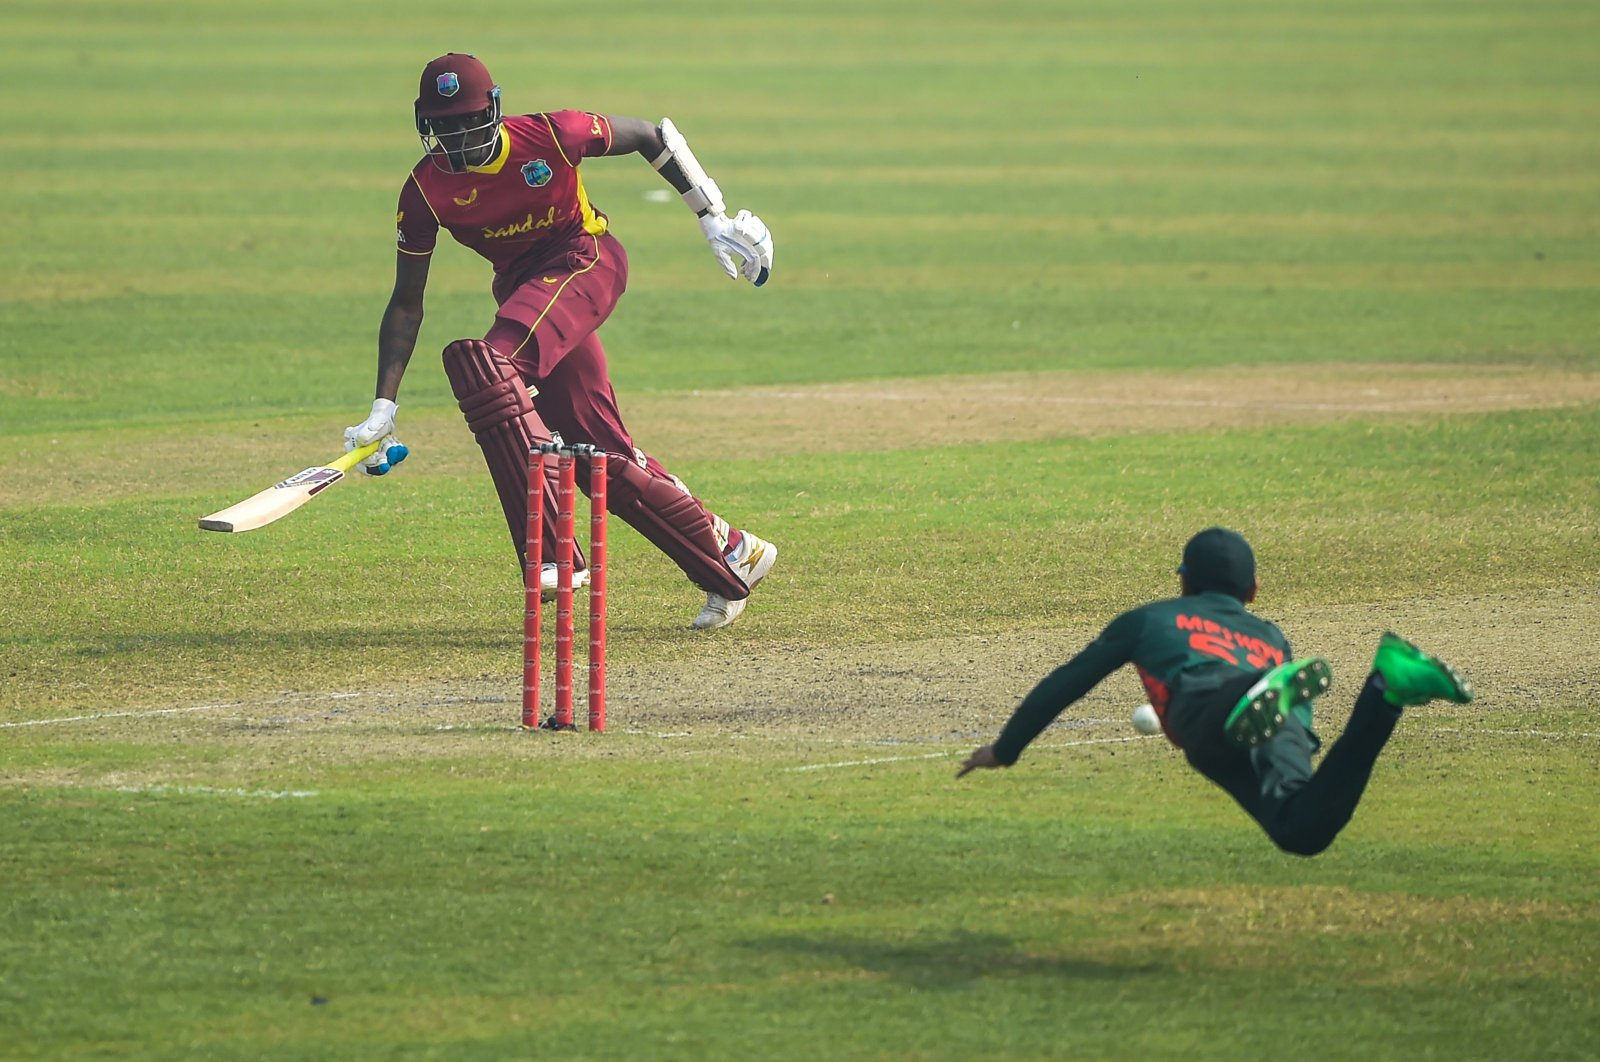 Bangladesh's Mehidy Hasan (R) attempts to run out West Indies' Alzarri Joseph during the second one-day international between Bangladesh and West Indies at the Sher-e-Bangla National Cricket Stadium, Dhaka, Jan. 22, 2021. (AFP Photo)